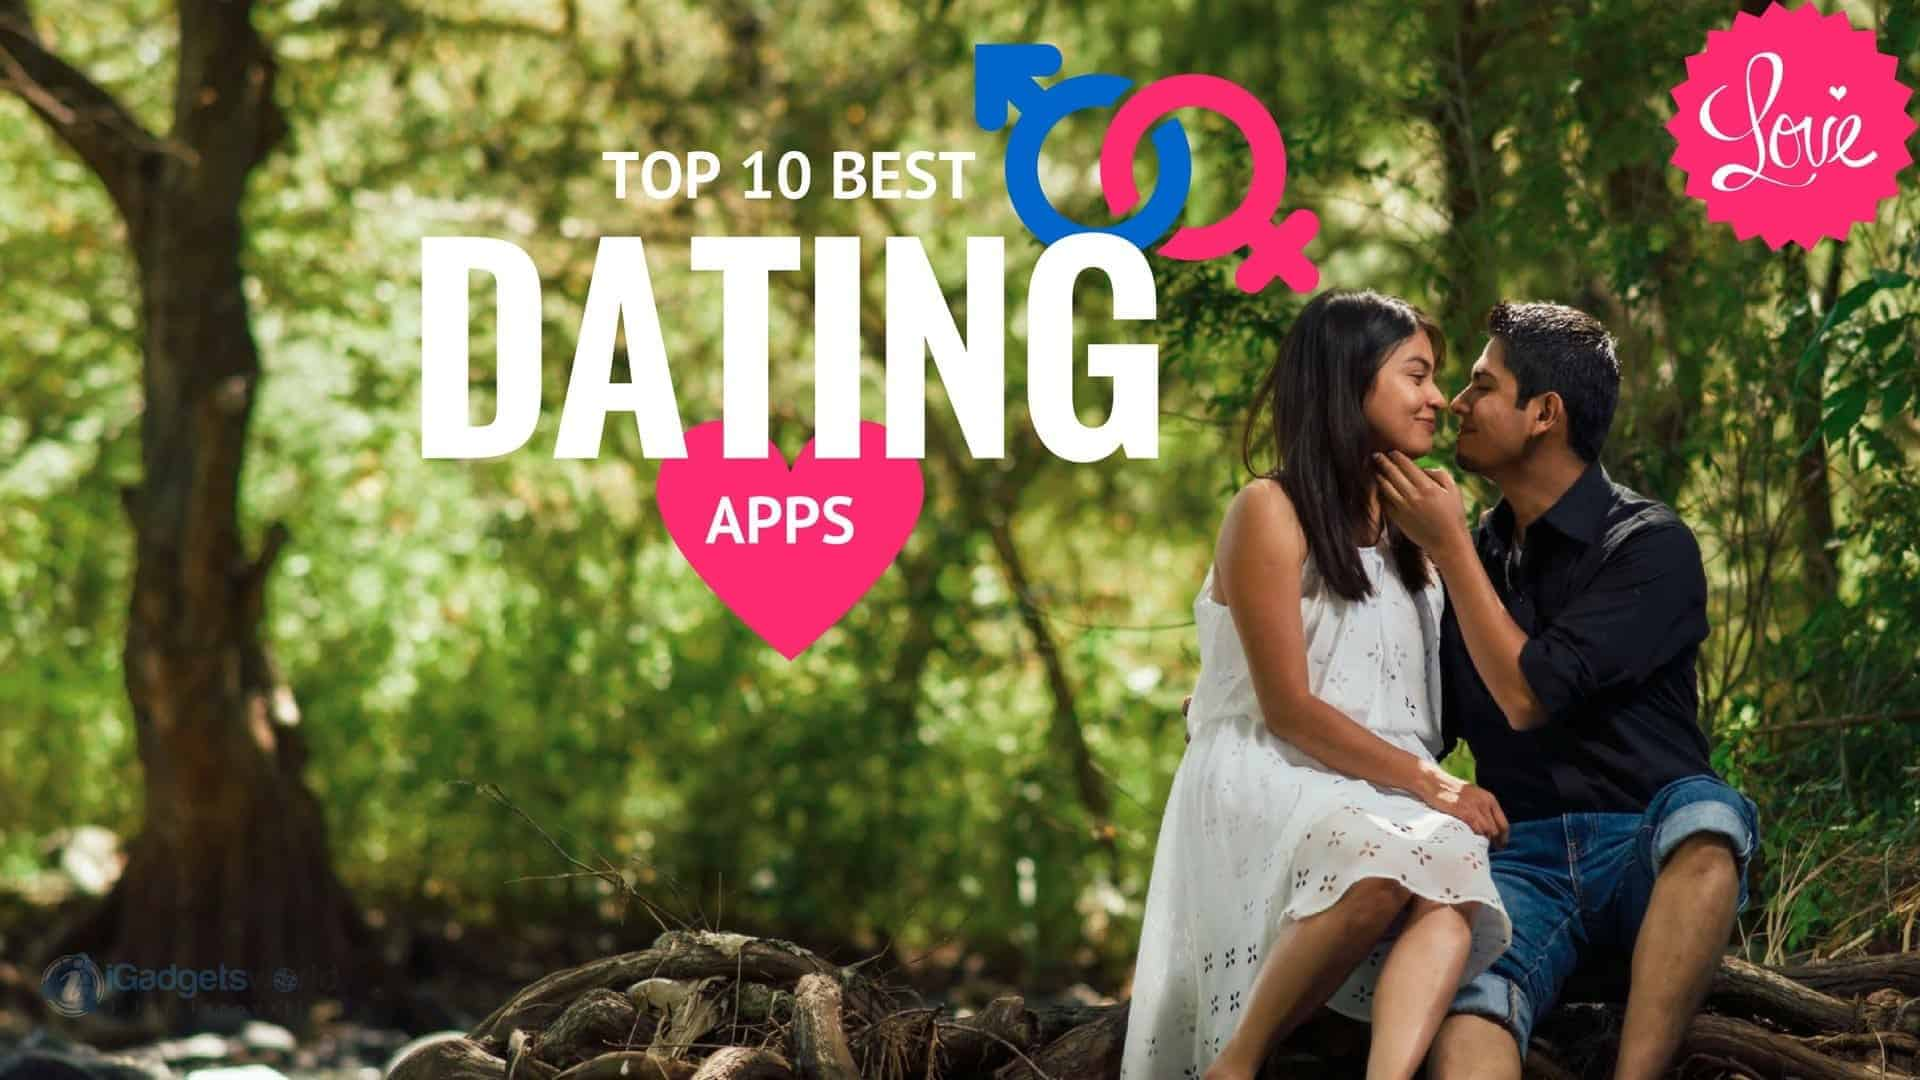 almira hindu dating site Best indian dating site - register to meet hundreds of indian single girls and boys over 18 and above select your local dating partner at your convenience thousands of singles profiles.